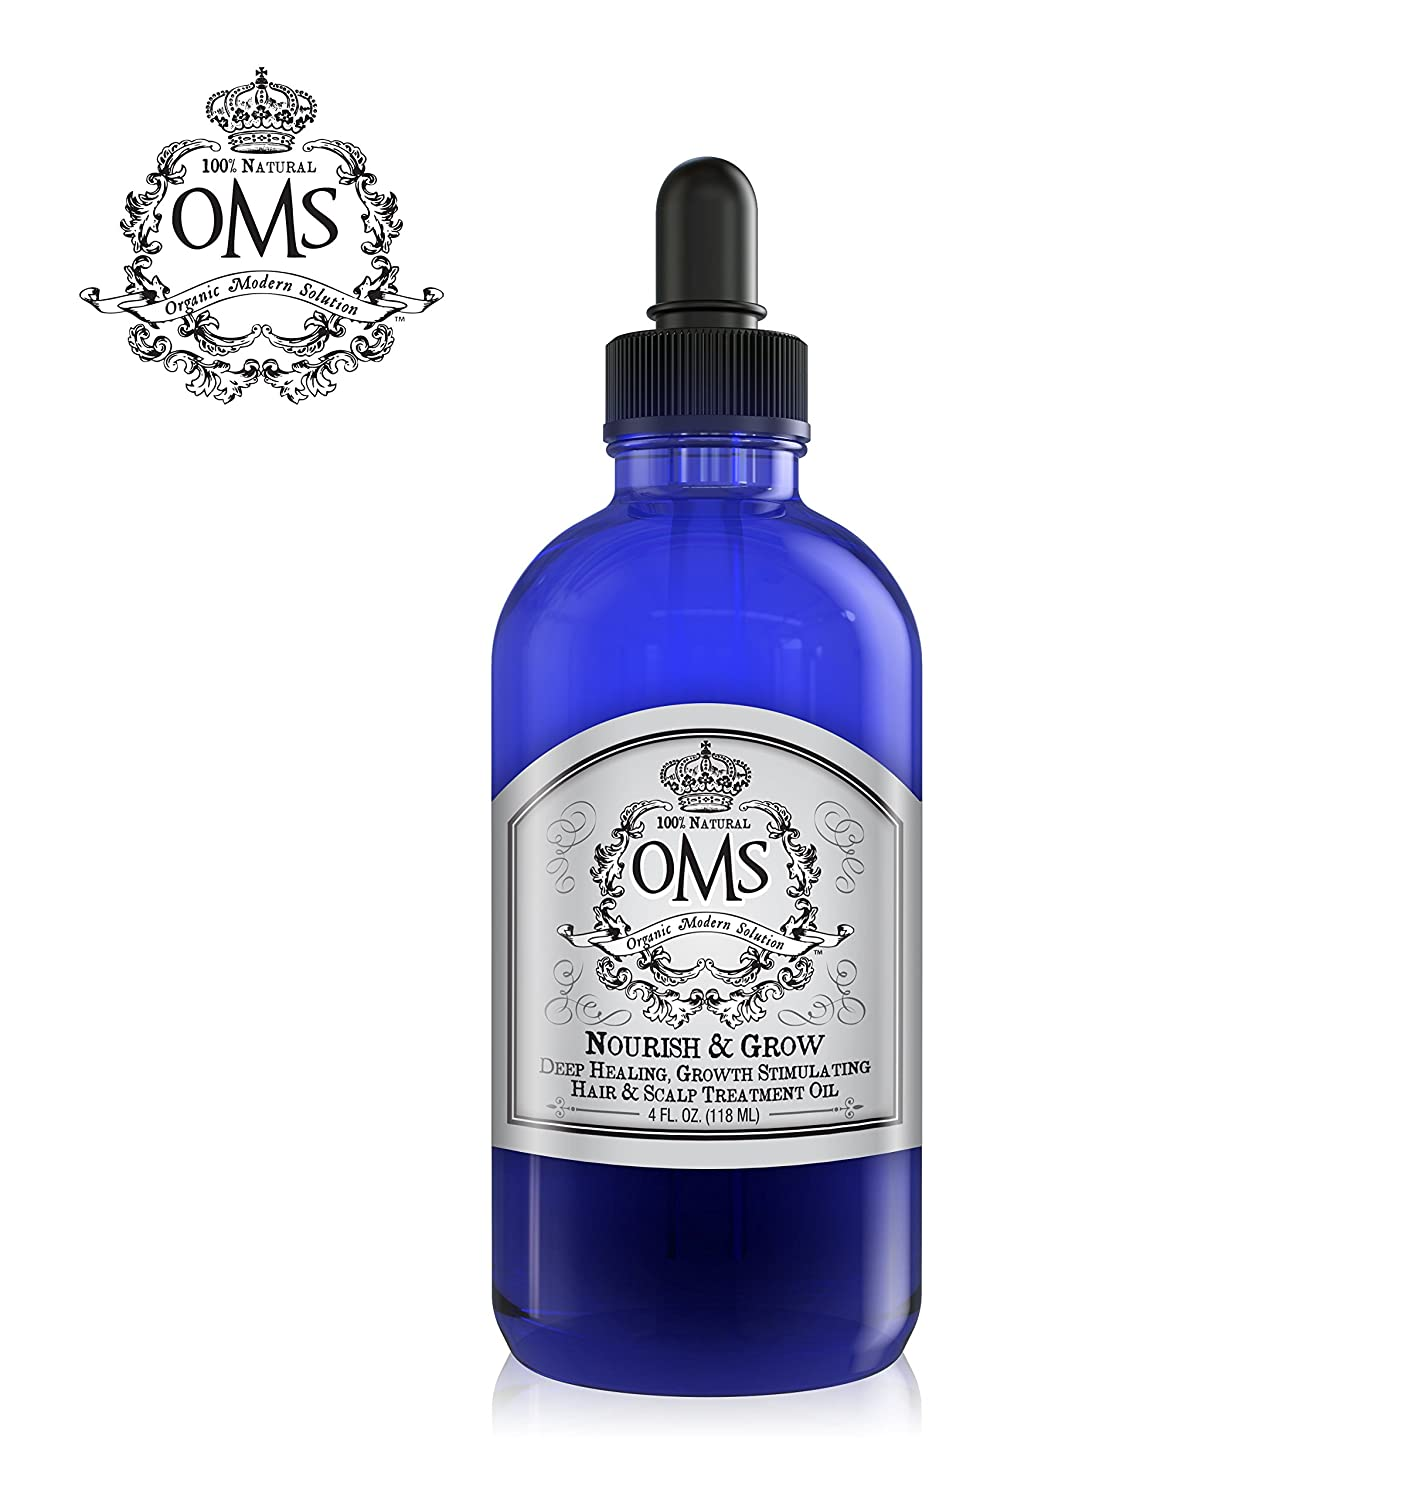 OMS Organic Hair Growth Hair Loss Thickening Oil, Deep Conditioning, Growth Stimulating, Chemical Free, 100 All Natural, Castor Oil based with Tribramla Complex 4 oz